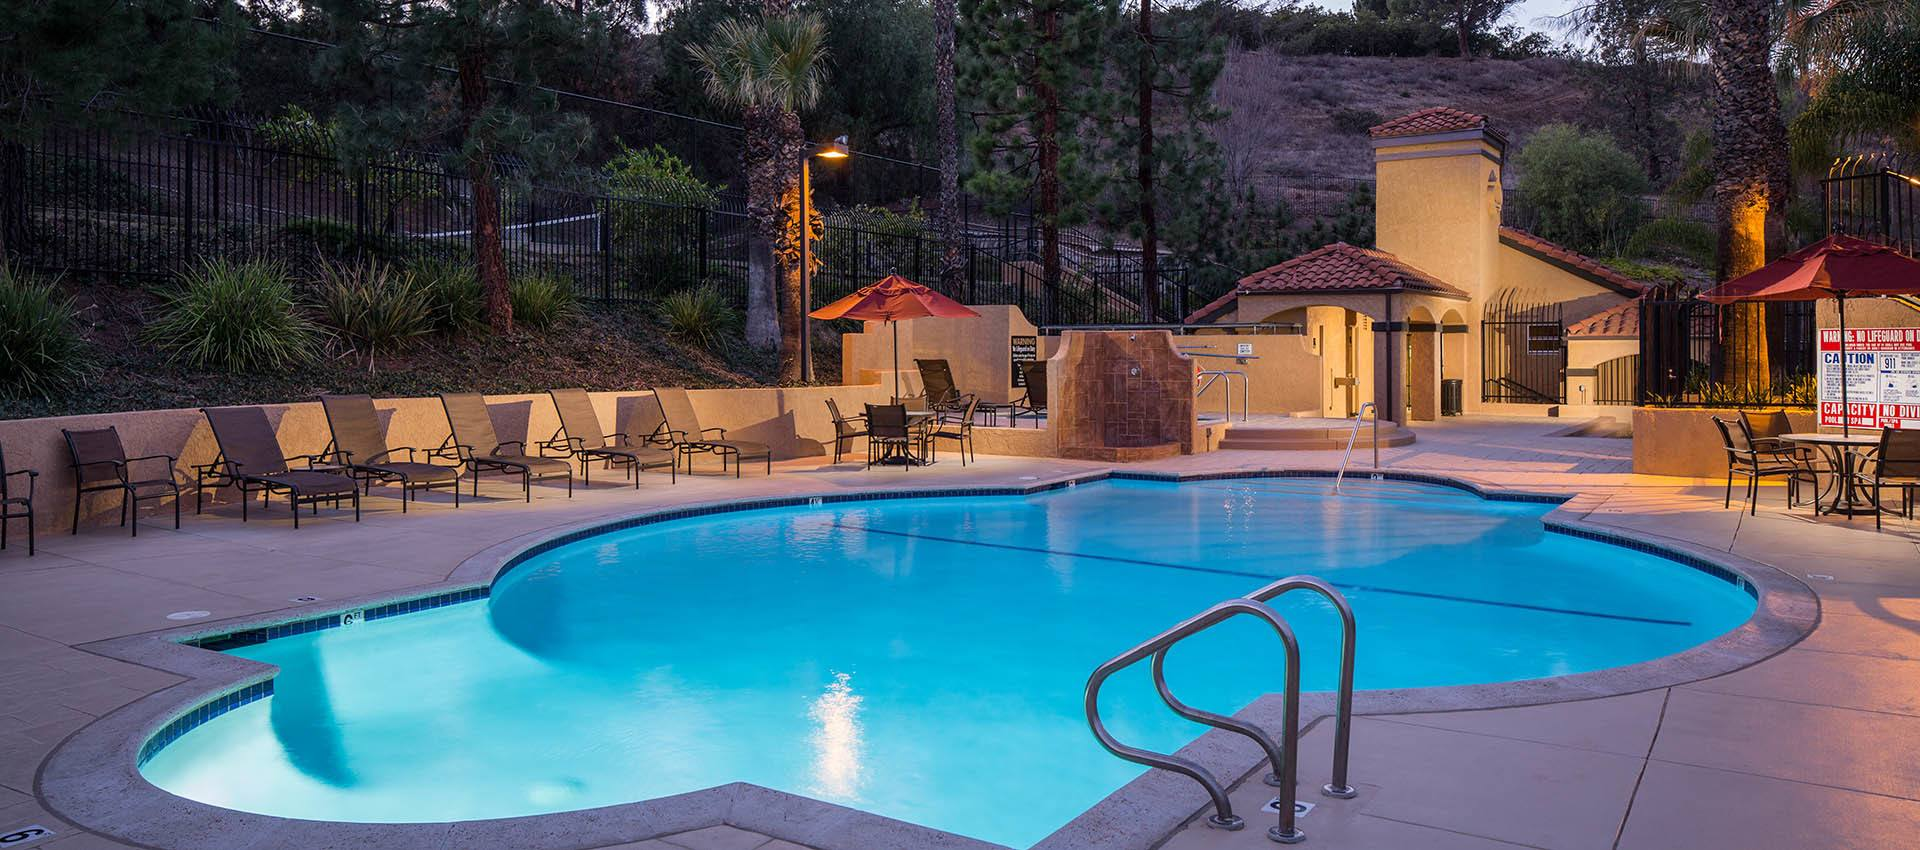 Pool at dusk at Shadow Ridge Apartment Homes in Simi Valley, CA